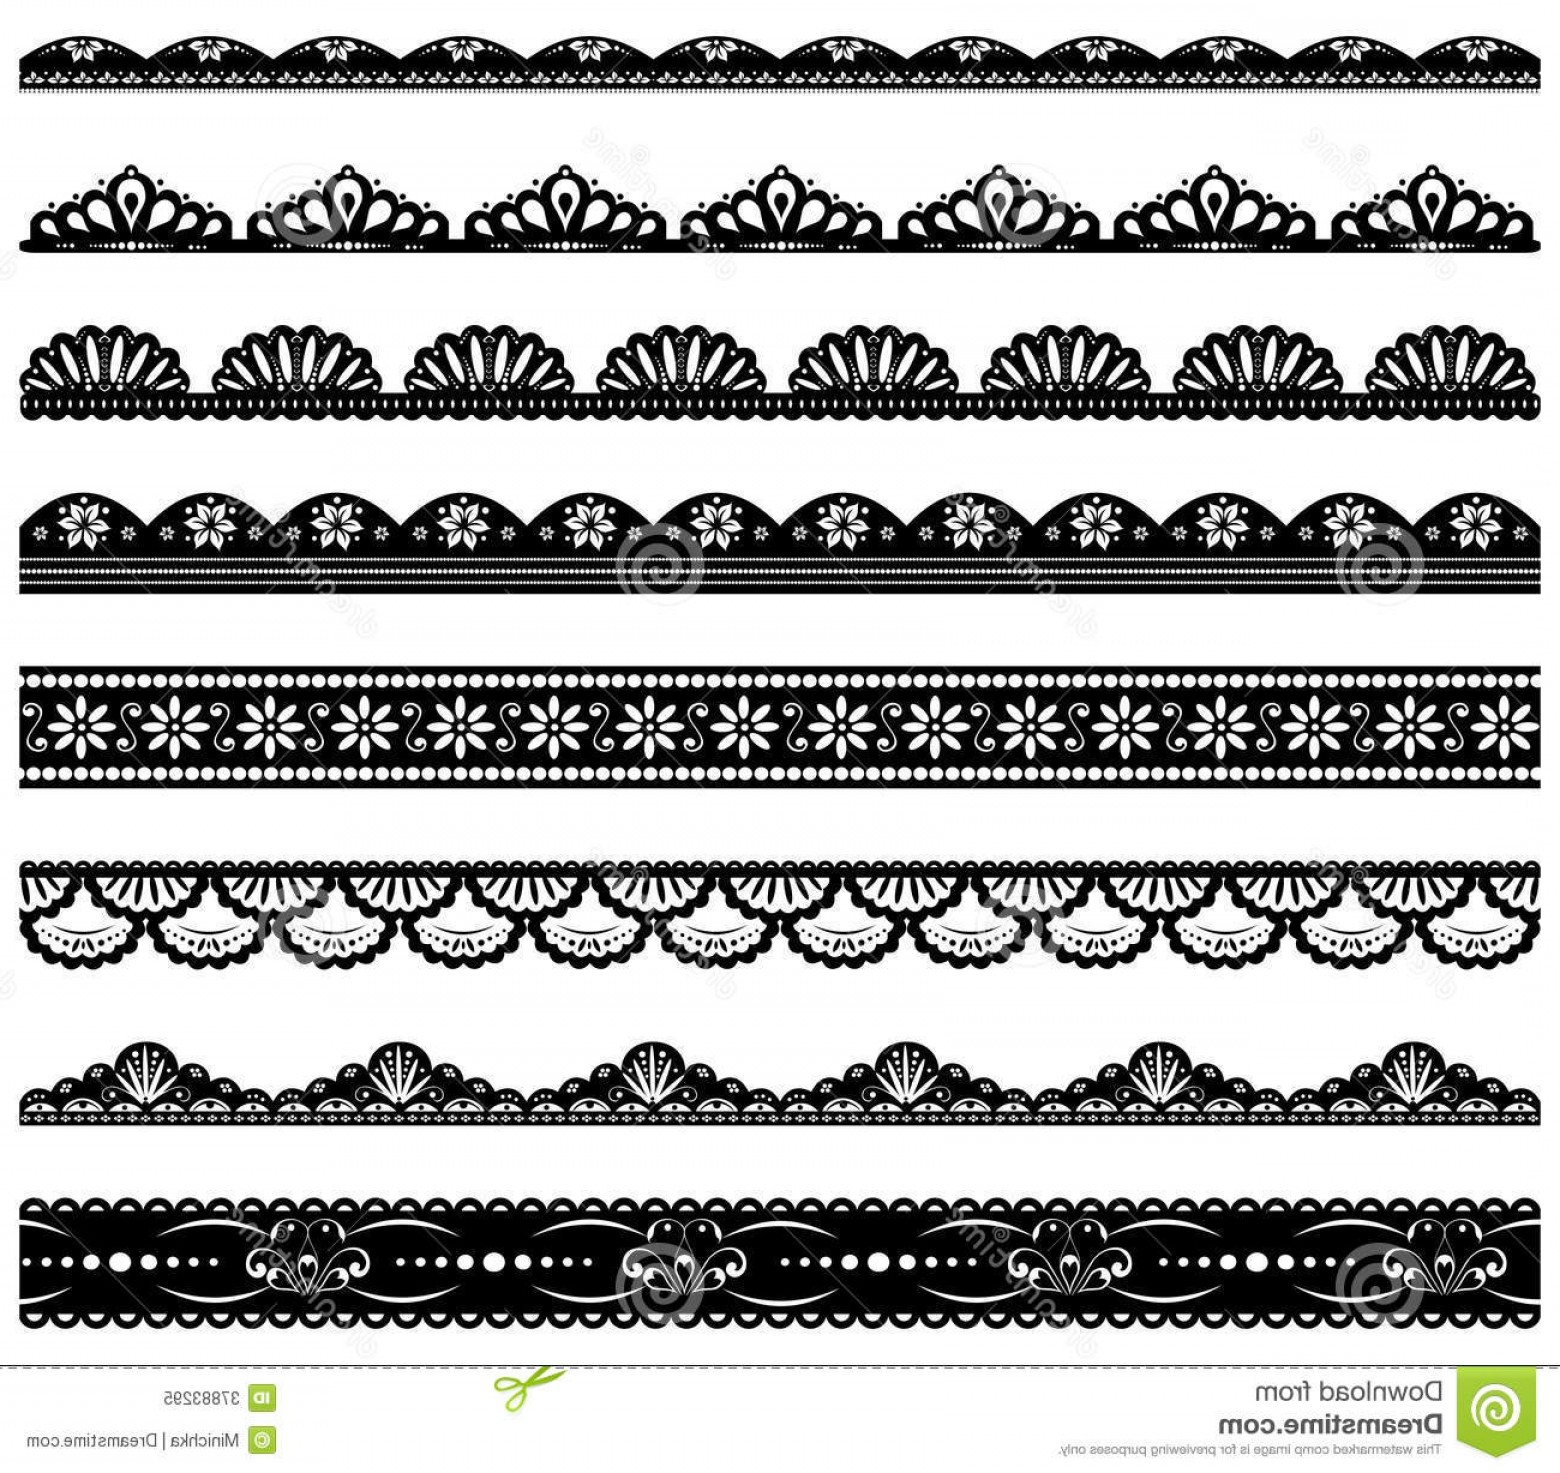 Black Scalloped Border Vector: Royalty Free Stock Photo Set Scalloped Vector Borders Lace Image